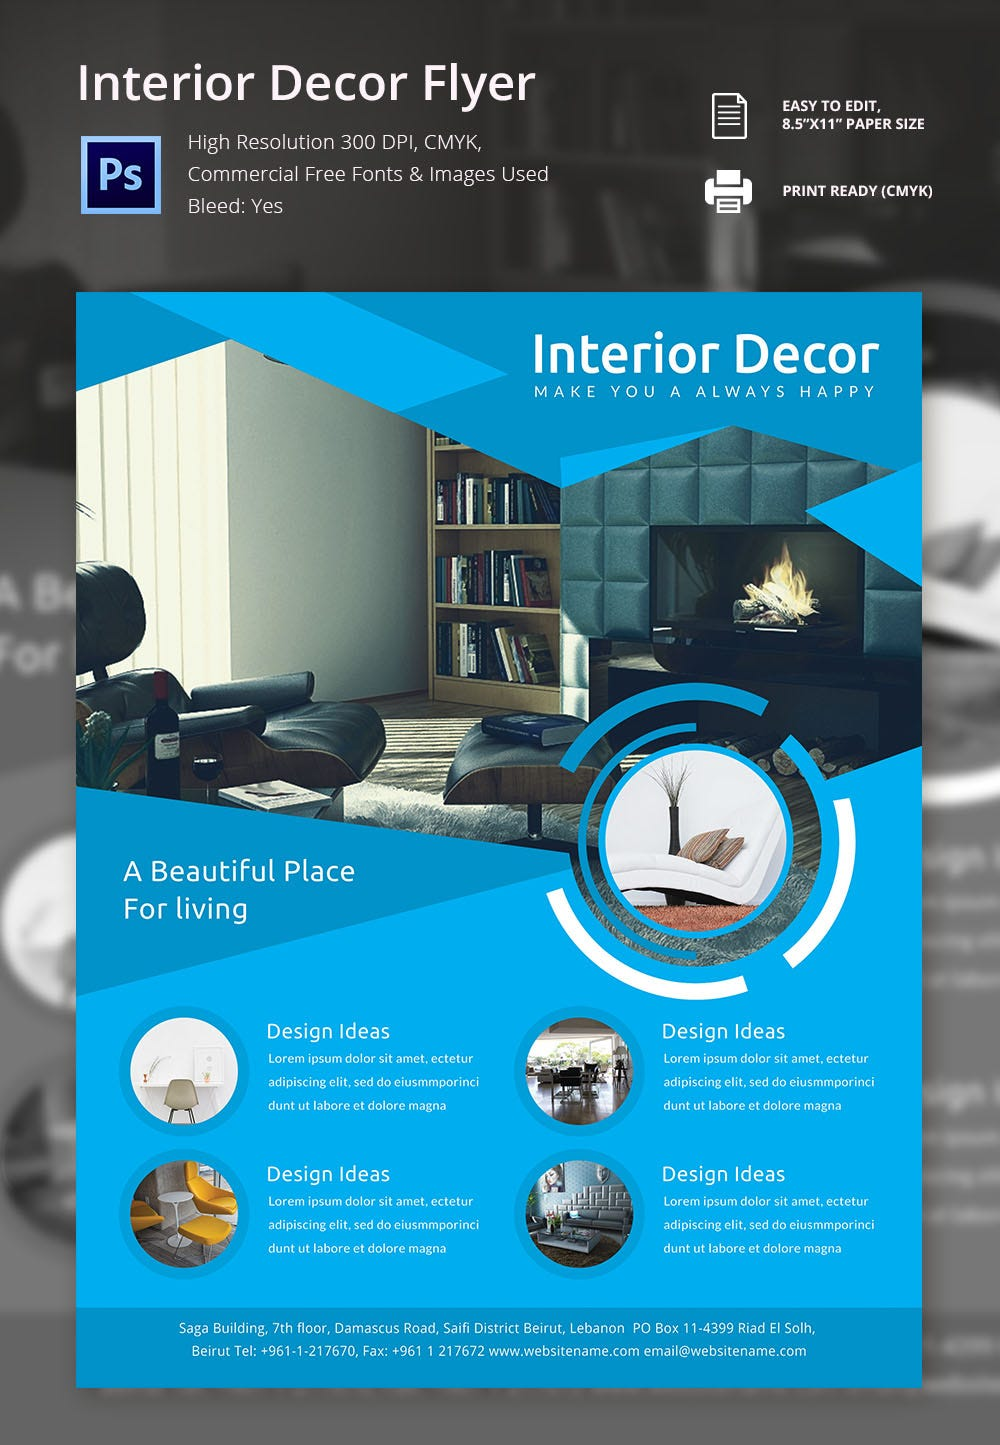 Interior Design Flyer Template - 25 + Free PSD, AI, Vector EPS ...